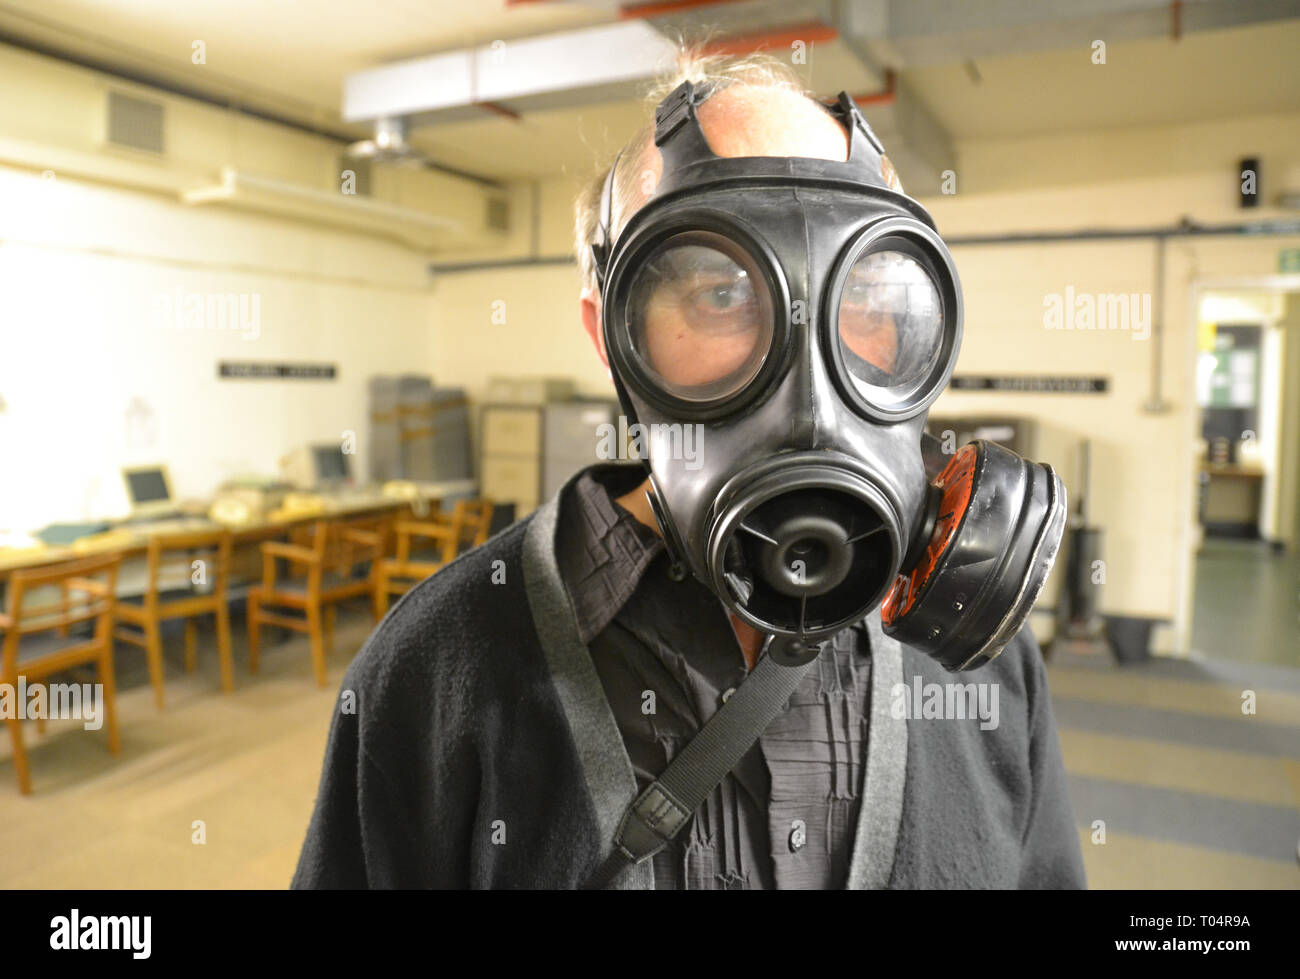 Man in gas mask at the Kelvedon Hatch Secret Nuclear Bunker, Brentwood, Essex, UK - Stock Image